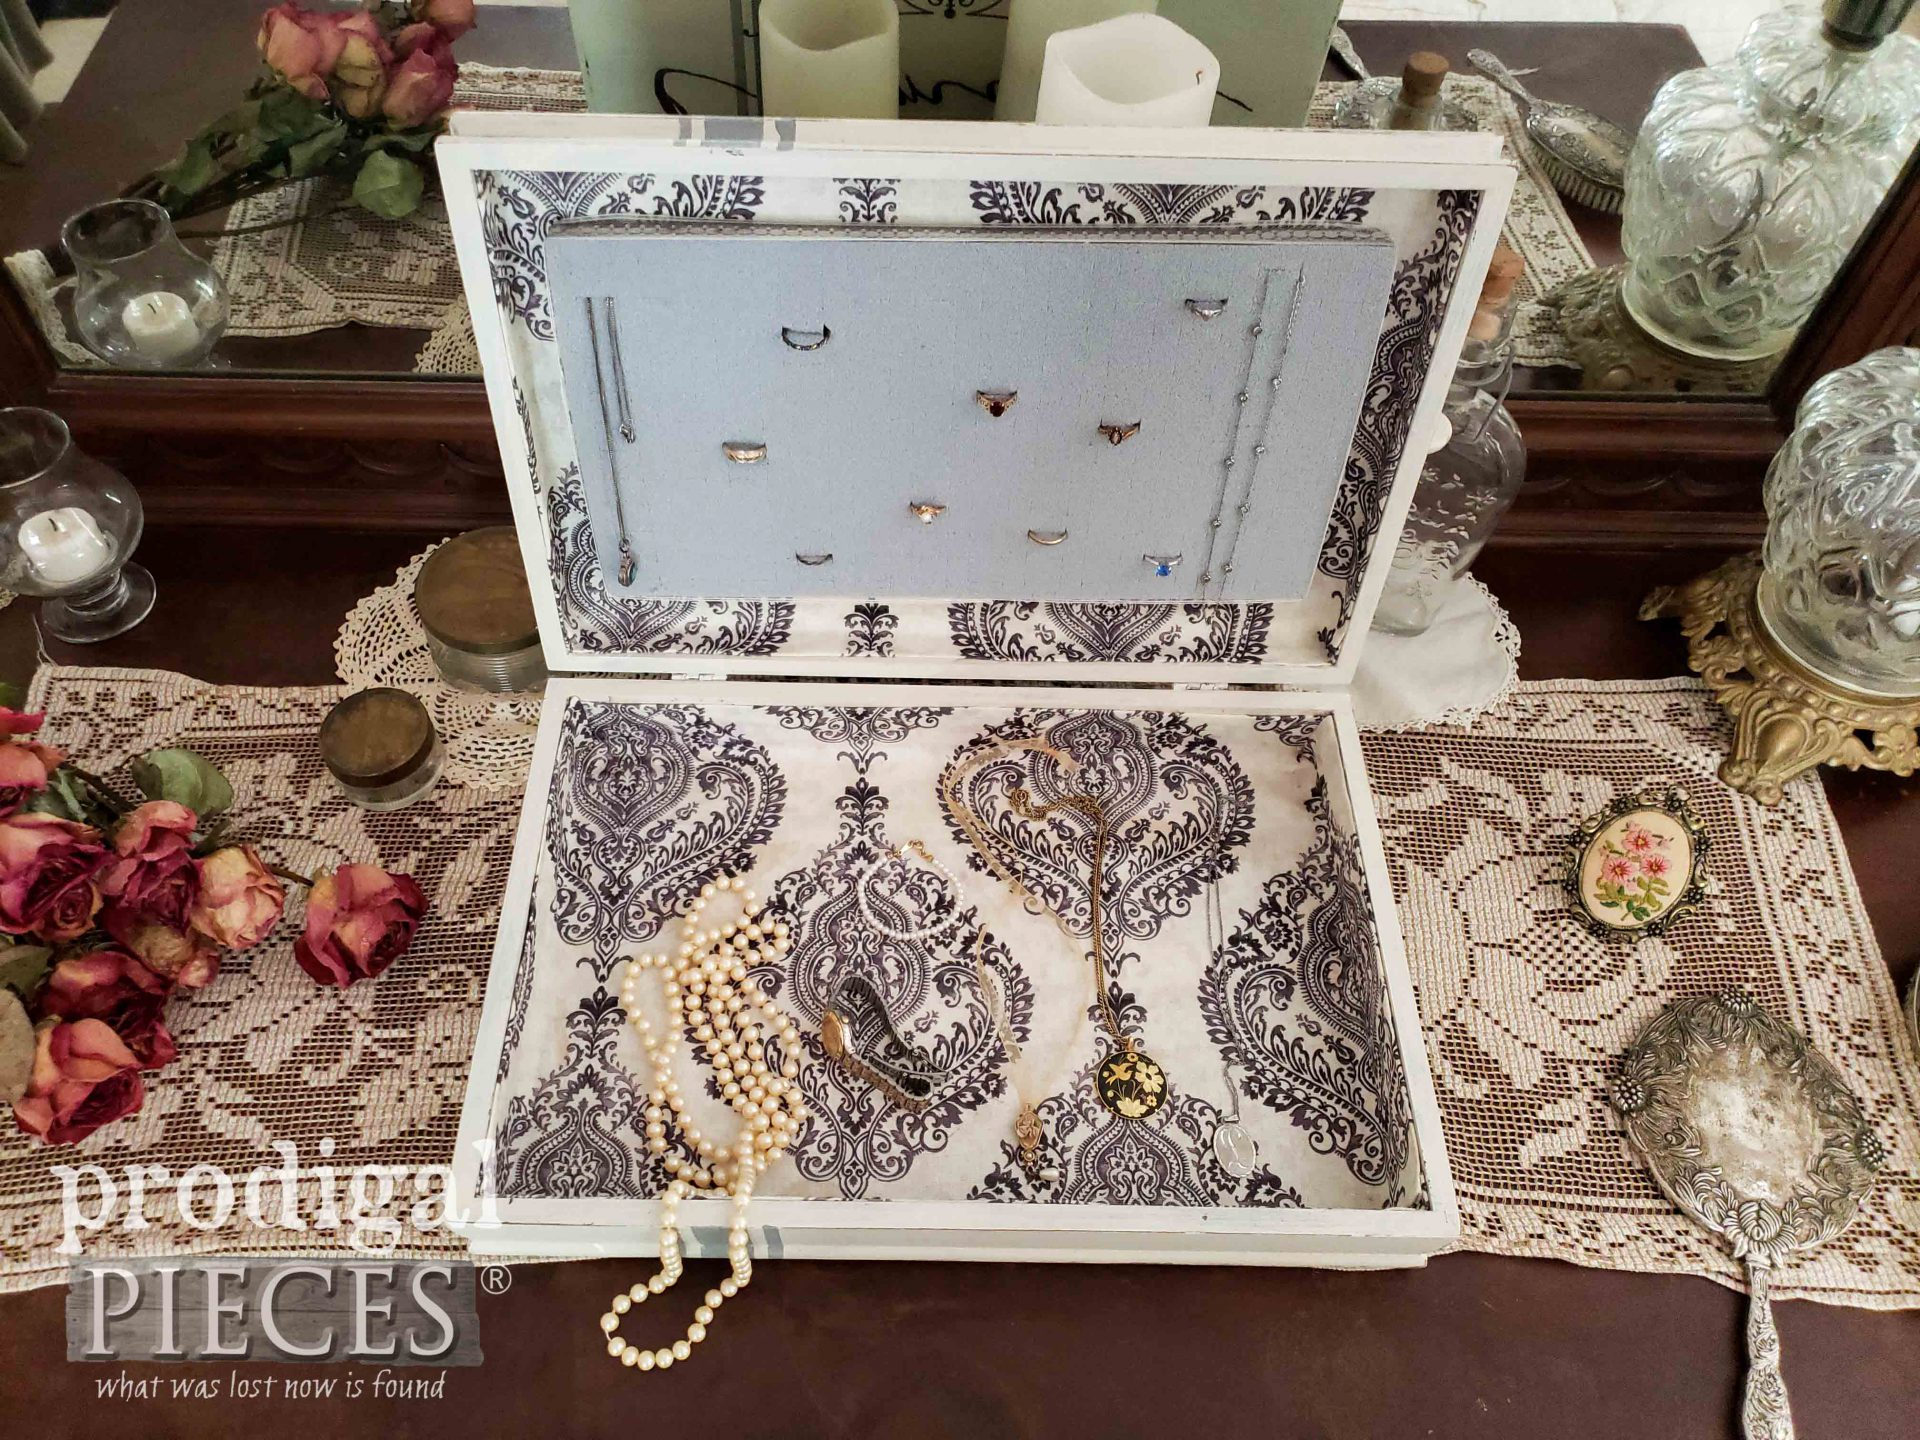 DIY Jewelry Box from Upcycled Silverware Box by Prodigal Pieces | prodigalpieces.com #prodigalpieces #farmhouse #home #jewelry #homedecor #diy